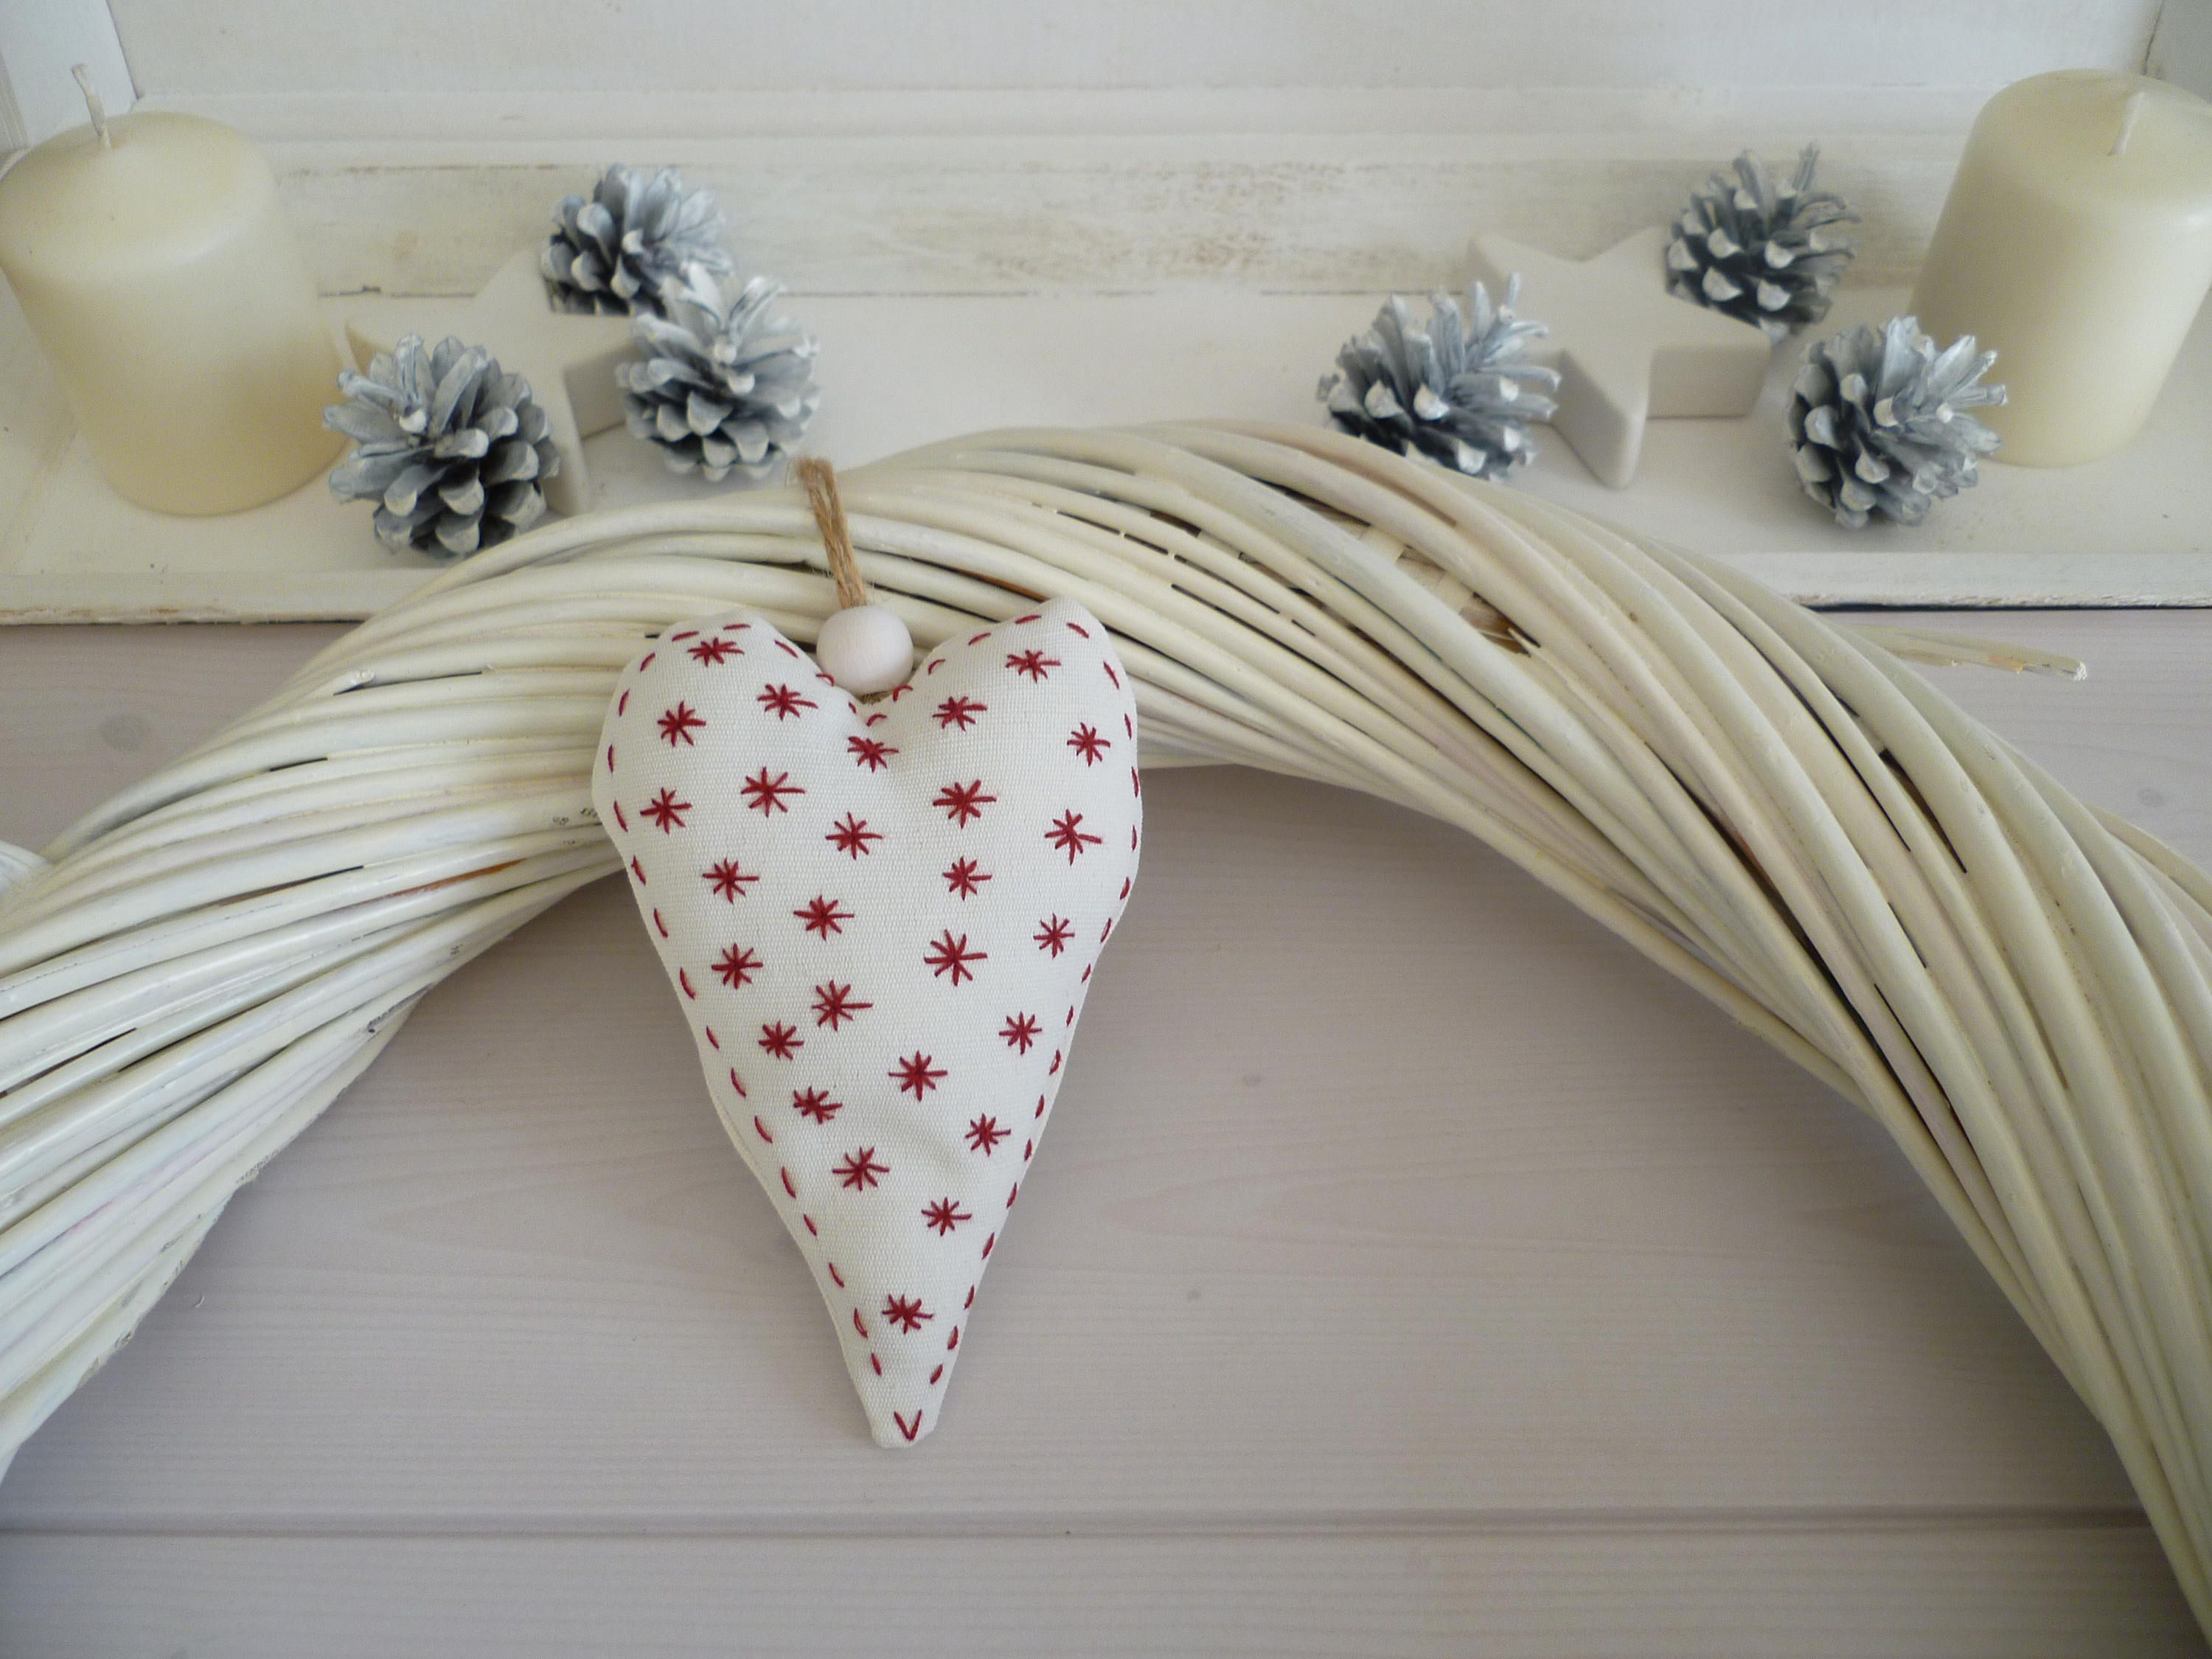 Coeur de noel decoration style scandinave decoration de spain brodé en rouge de la boutique PetiteCurieuse sur Etsy